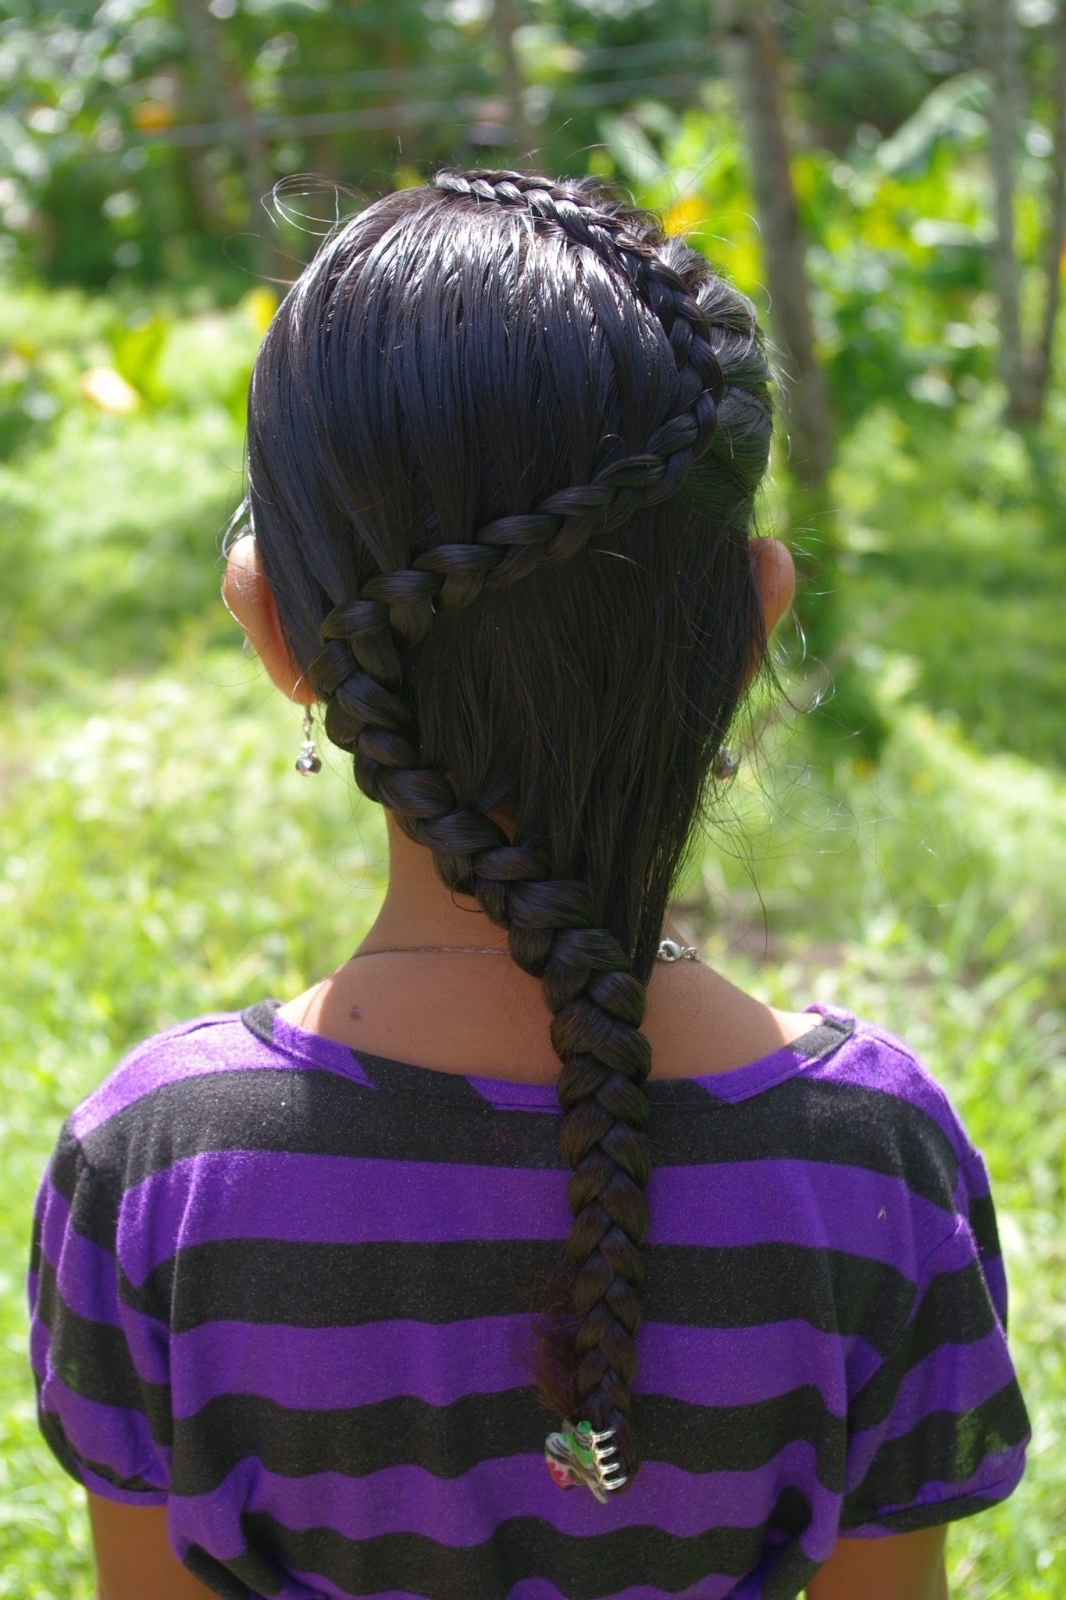 Widely Used Zig Zag Braided Hairstyles In Braids & Hairstyles For Super Long Hair: Micronesian Girl~ Zig Zag Braid (View 11 of 15)